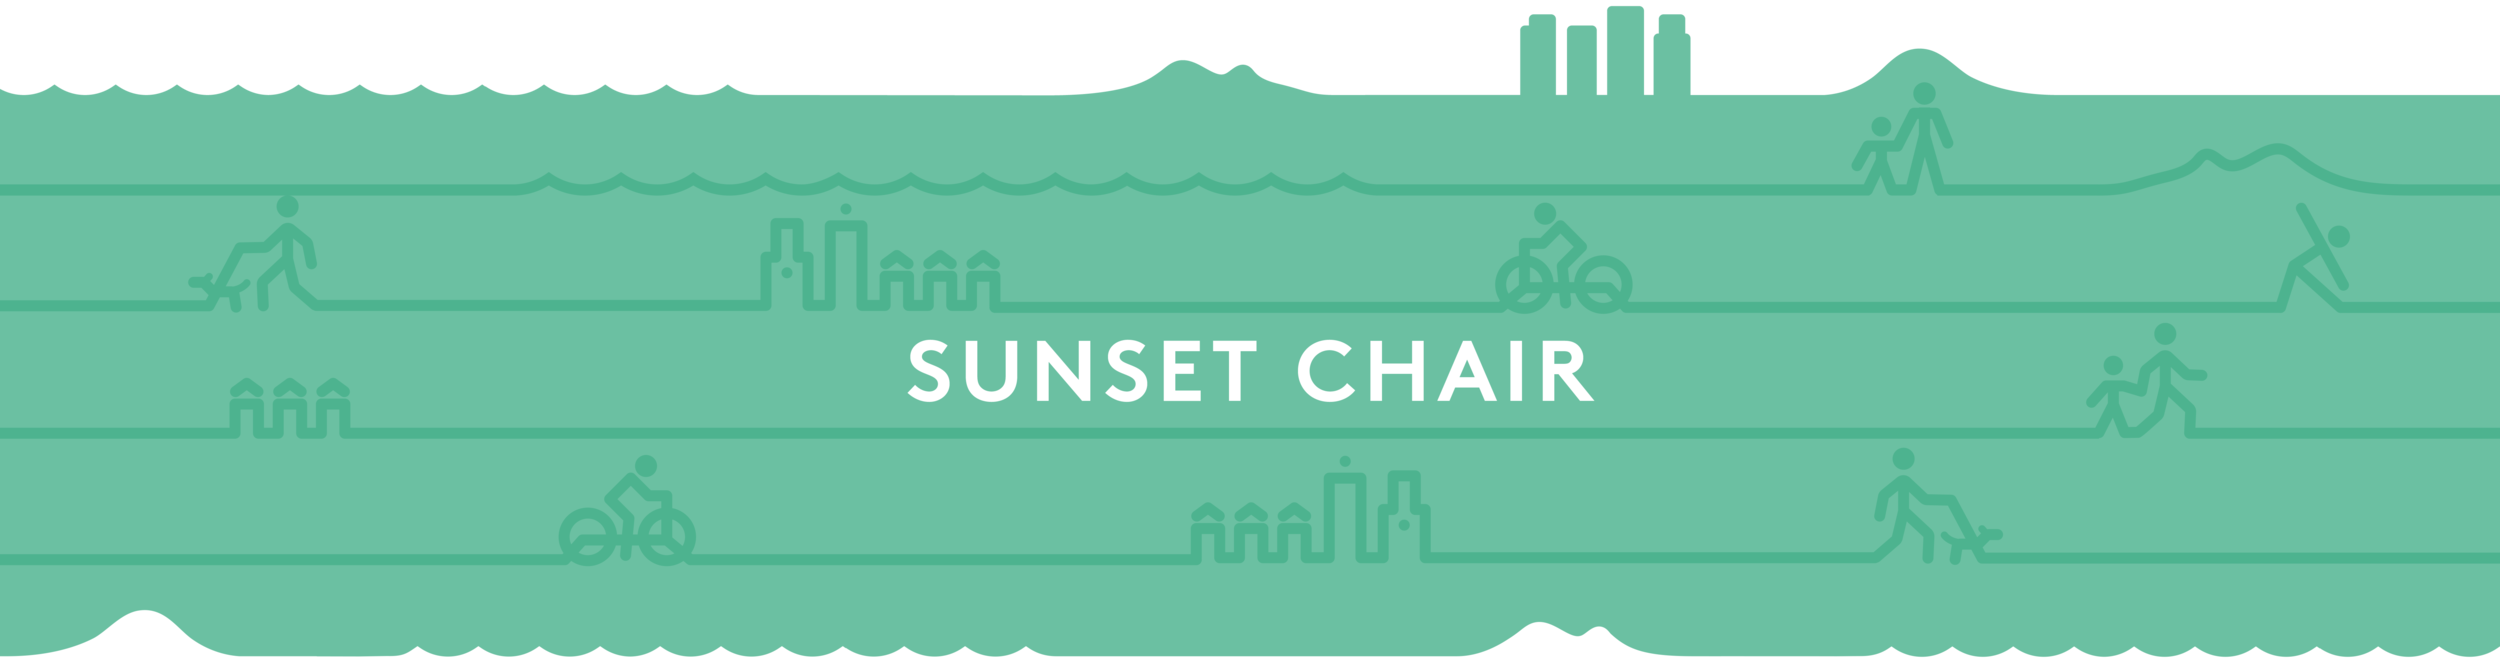 Sunet chair-01.png